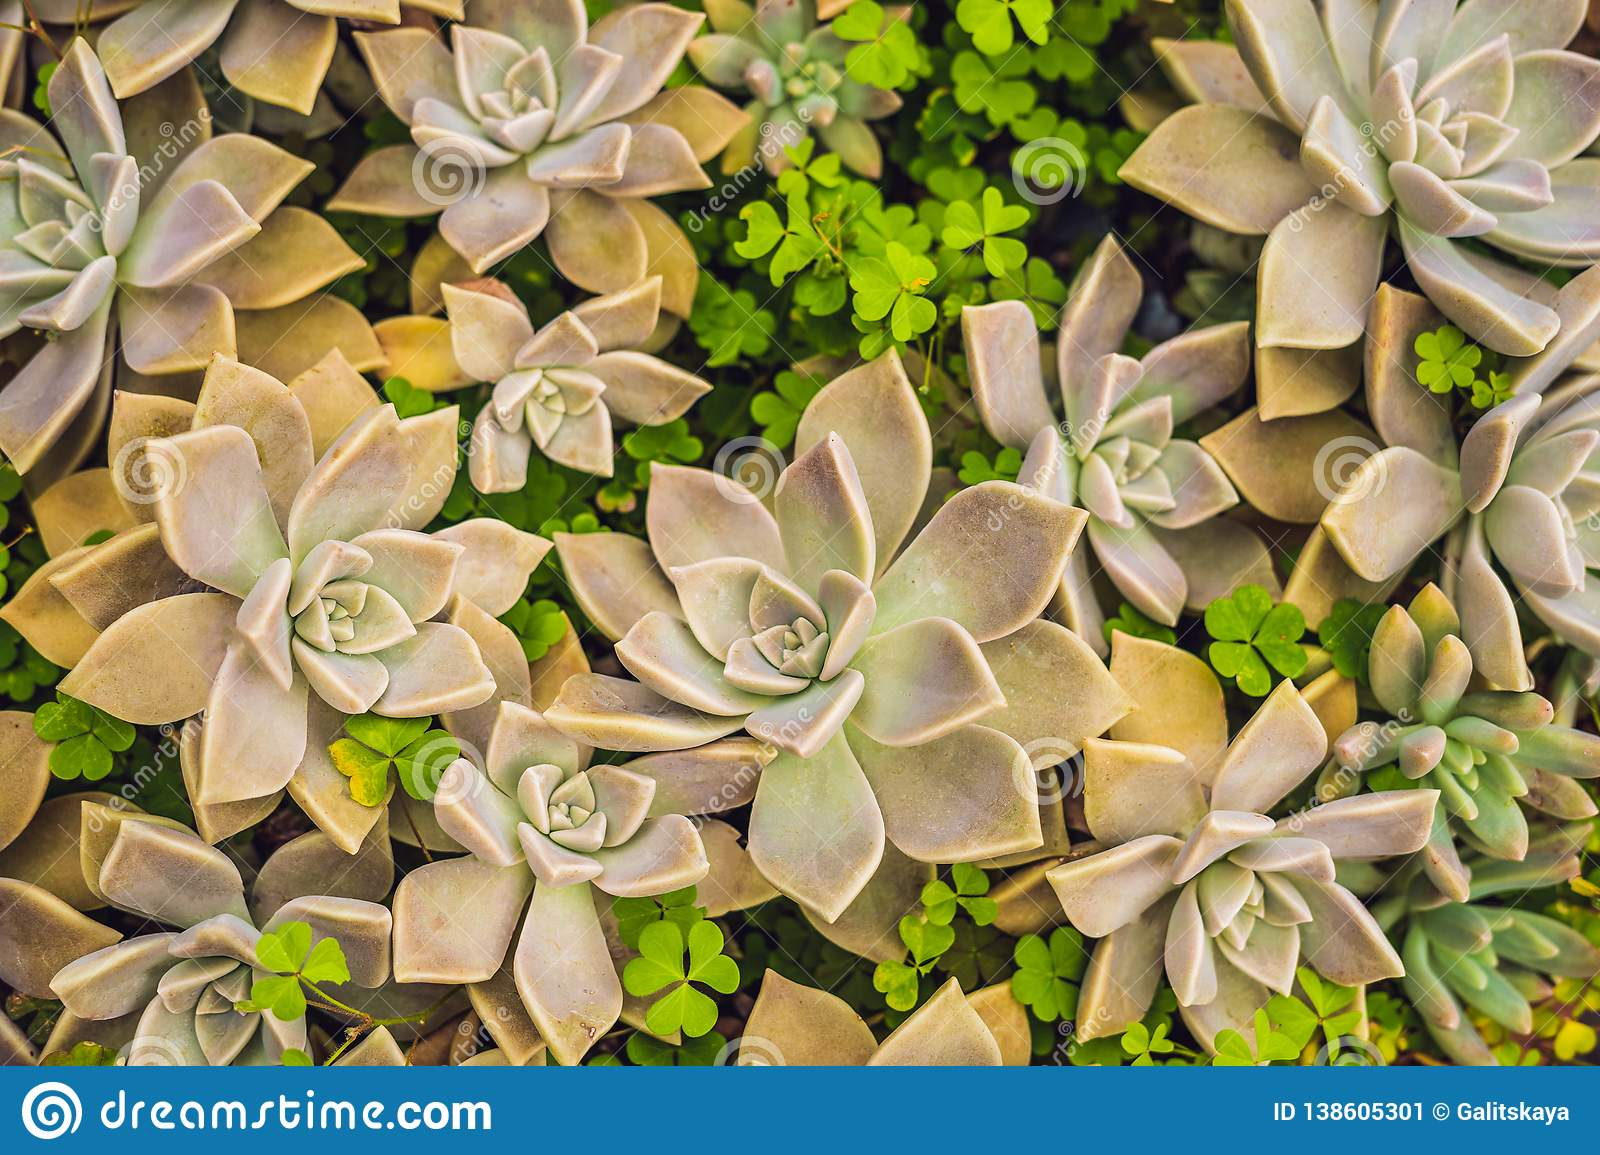 Cactus Succulents In The Ground In The Park Stock Image